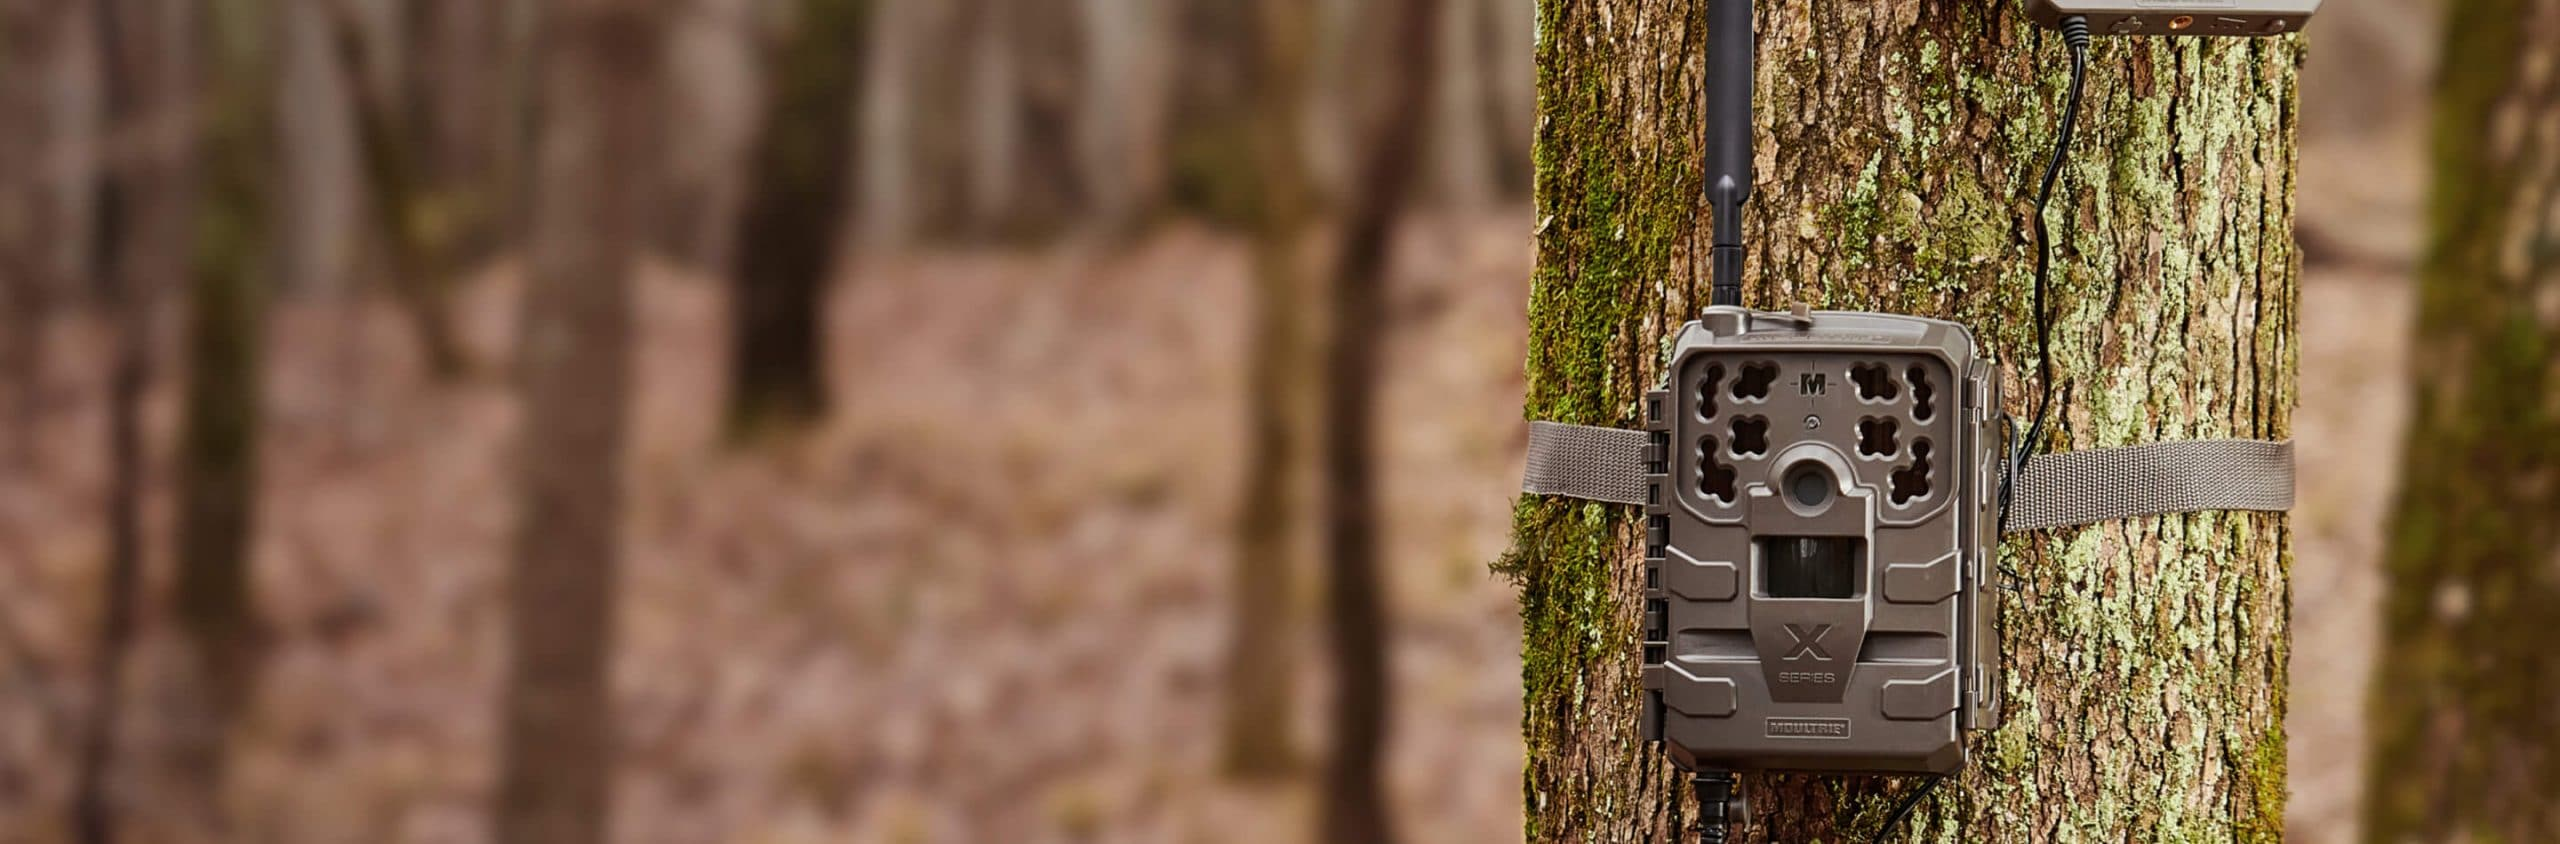 Cellular trail camera strapped to tree